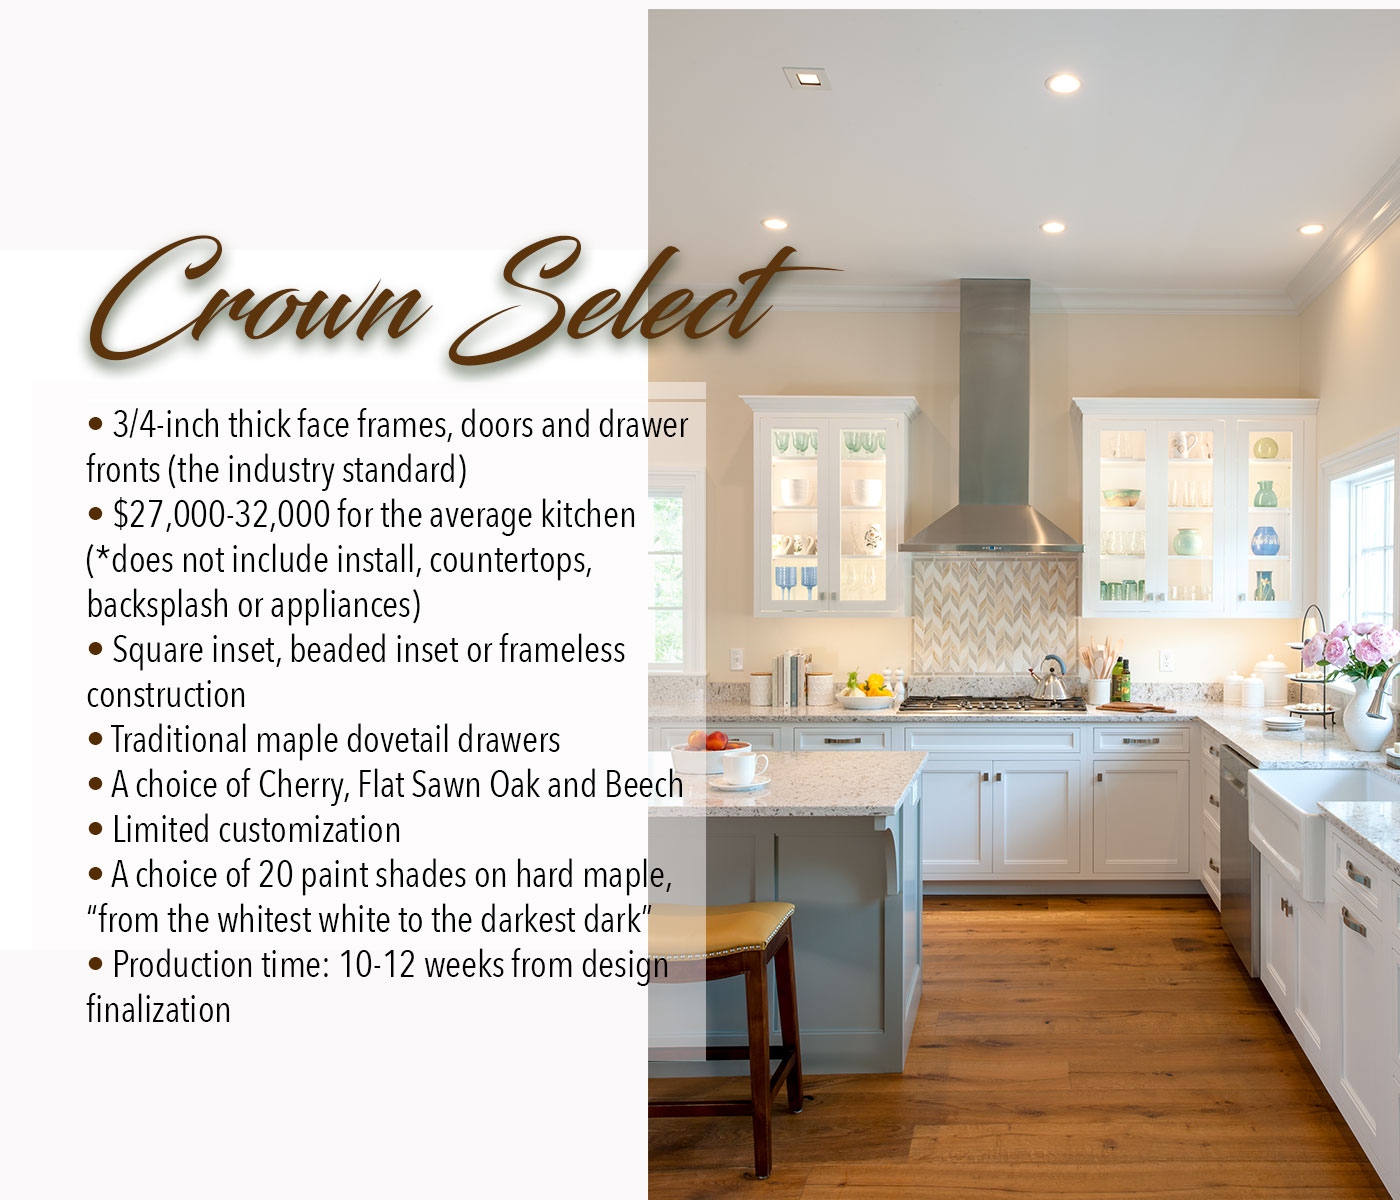 The merits of Crown Select custom cabinetry